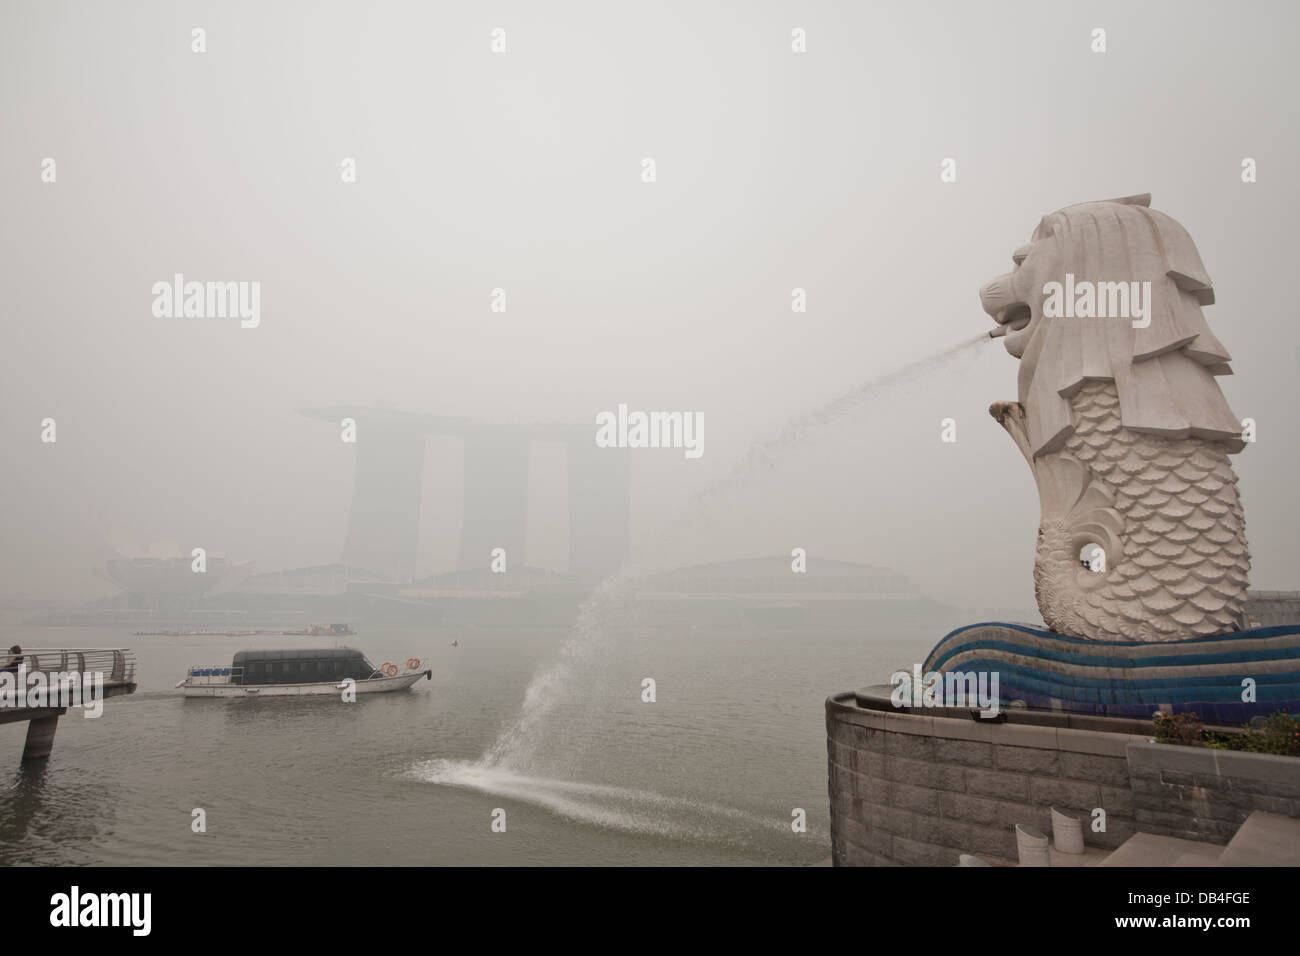 The haze crisis in Singapore hits the highest pollutant index level due to forest fires in Indonesia - Stock Image